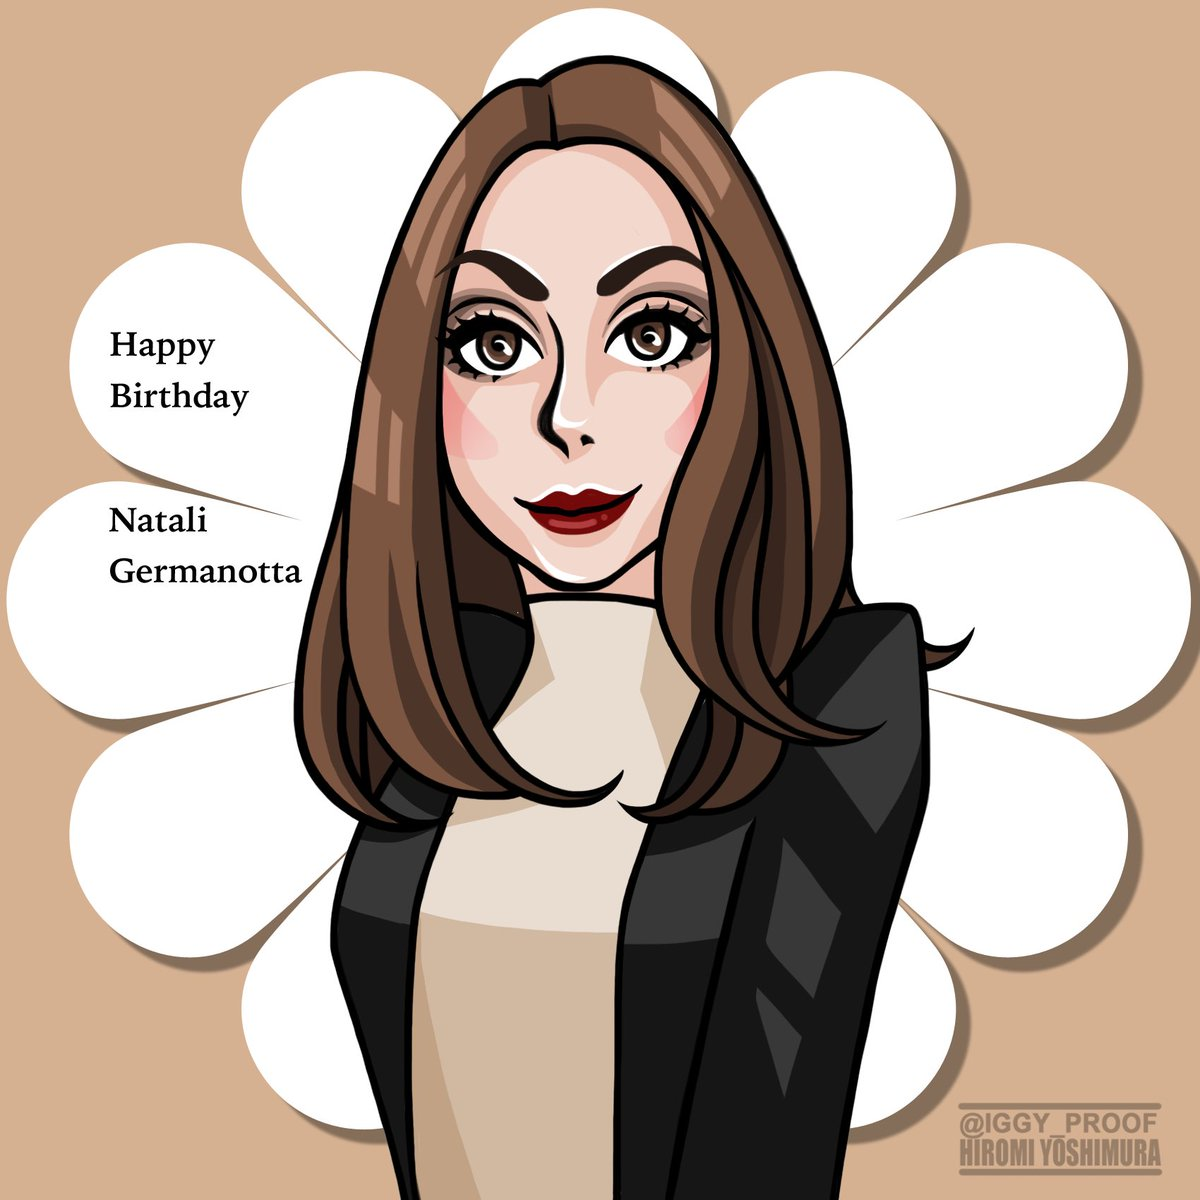 Happy Birthday Natali Germanotta! Wishing you a wonderful day!